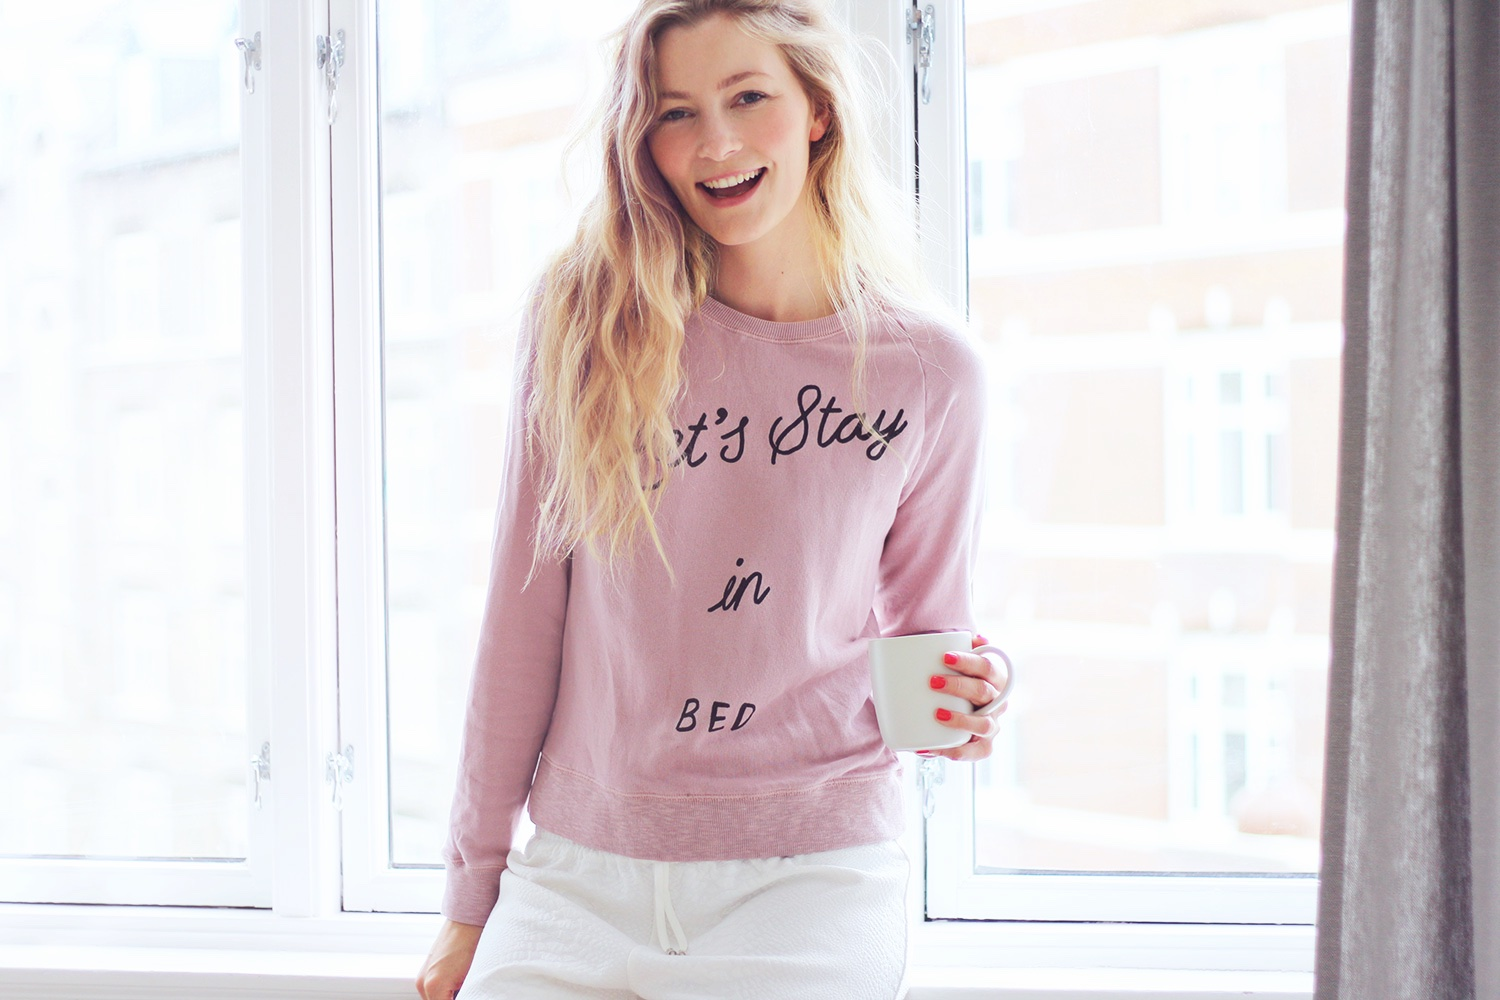 lets-stay-in-bed sweatshirt@2x